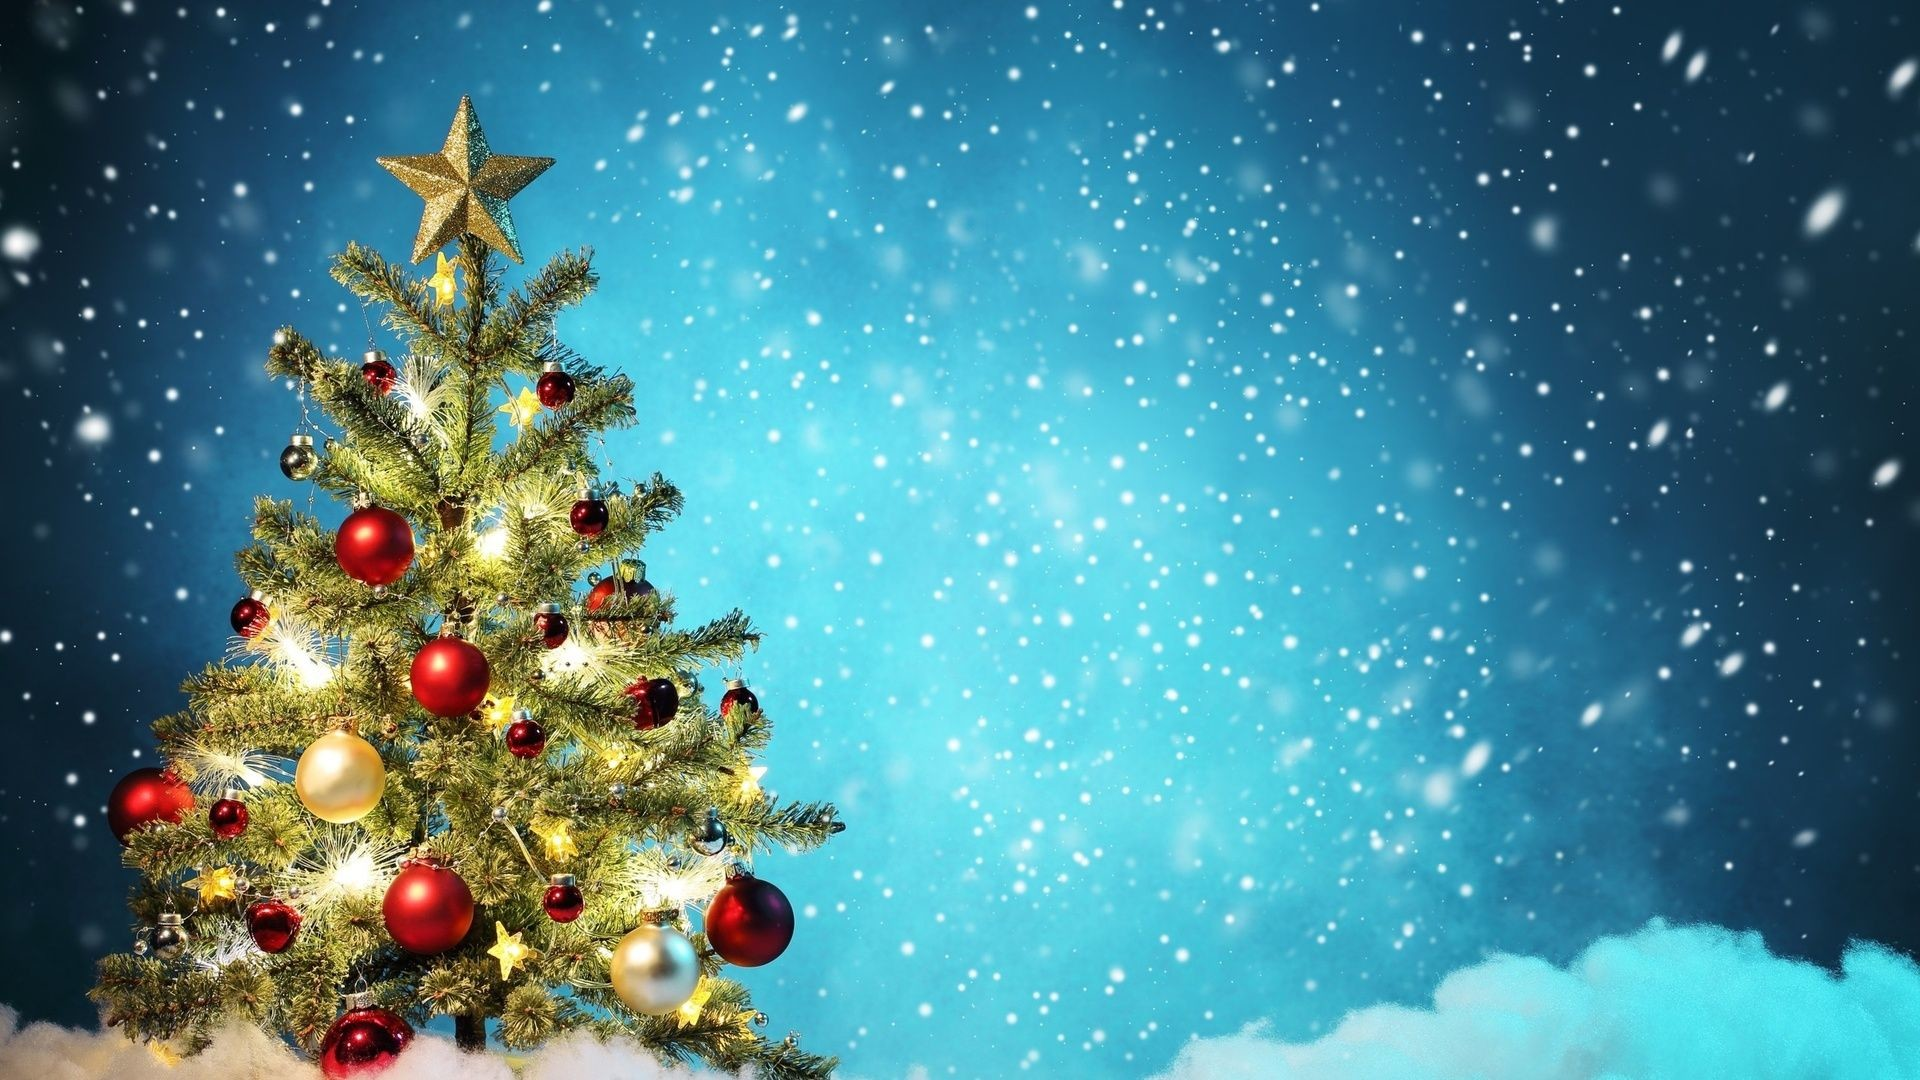 Christmas Hd Wallpapers 1080p.Christmas Wallpapers 1920x1080 81 Background Pictures